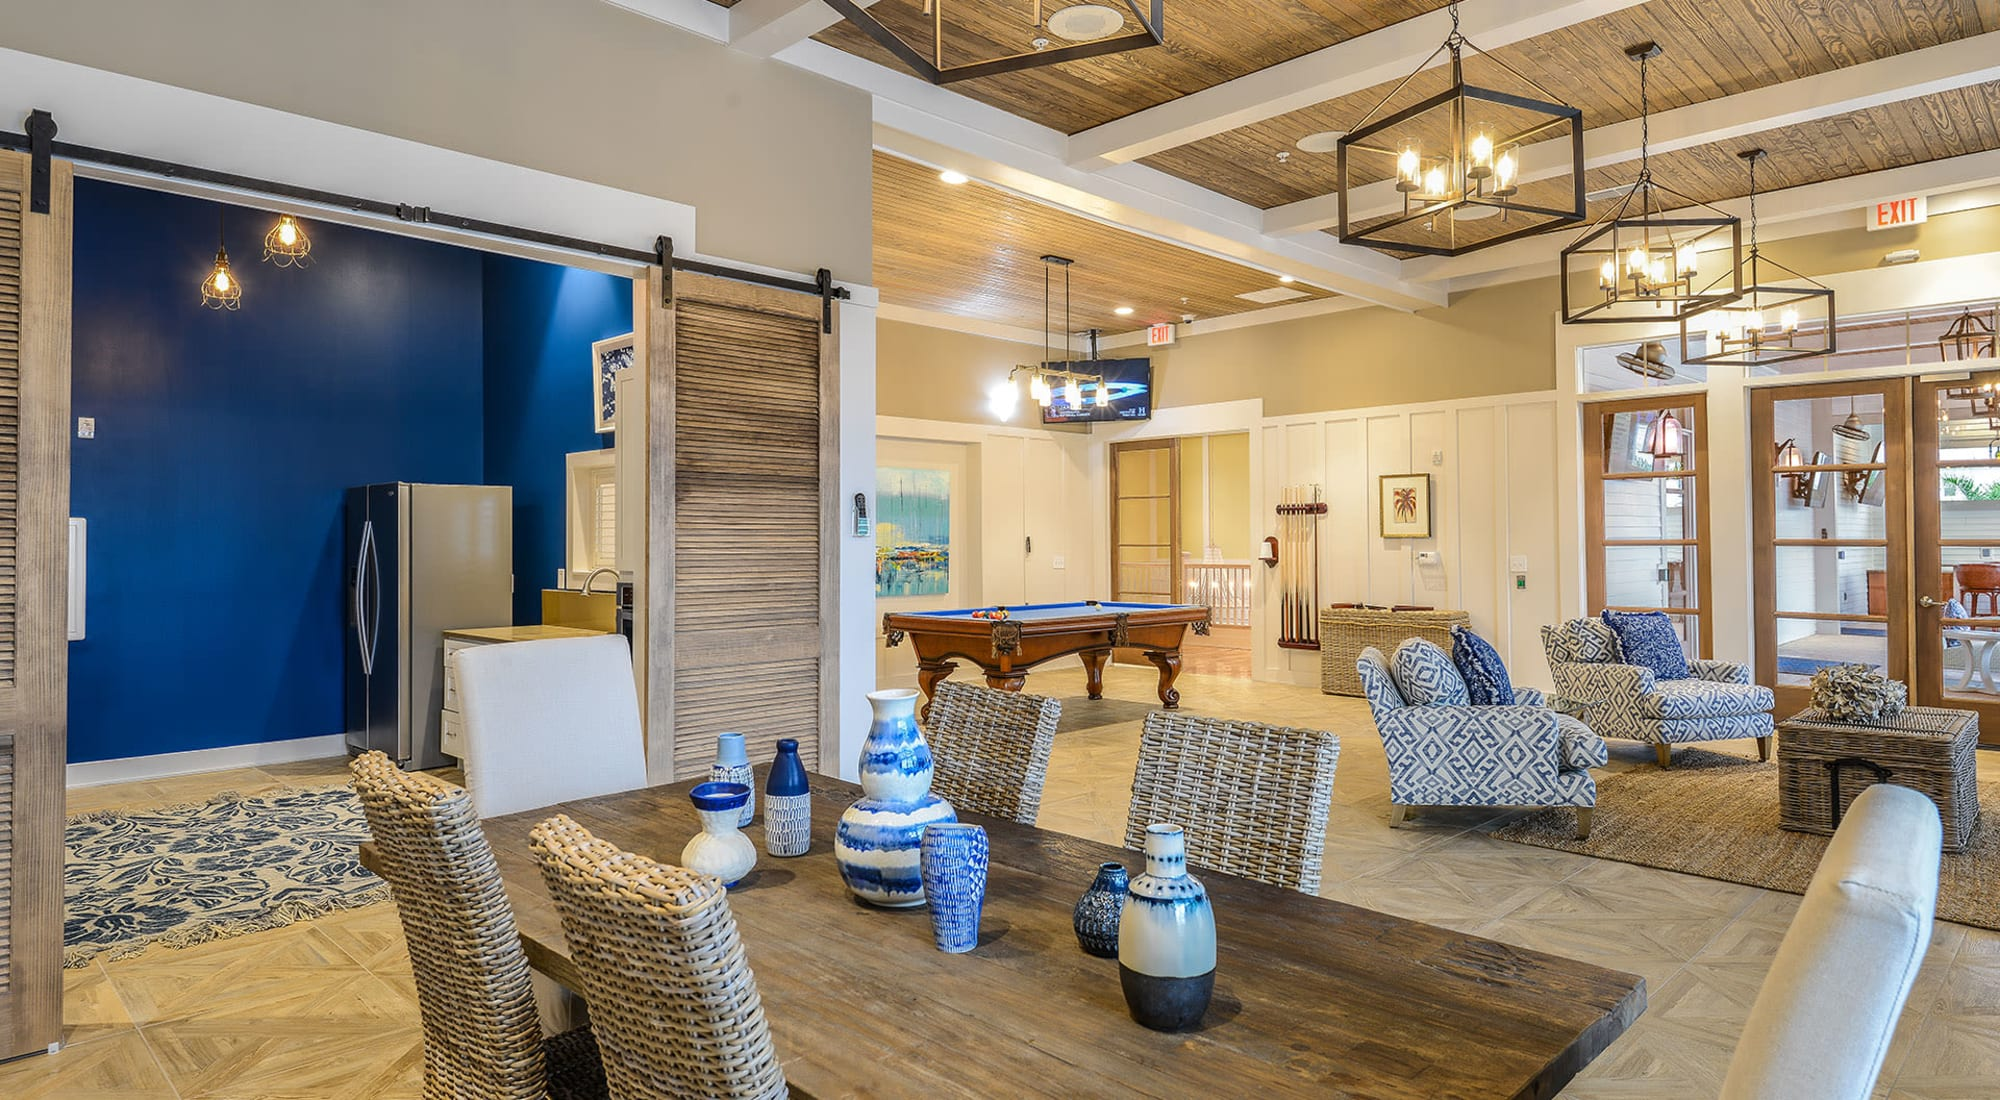 Palm Bay Club apartments in Jacksonville, Florida